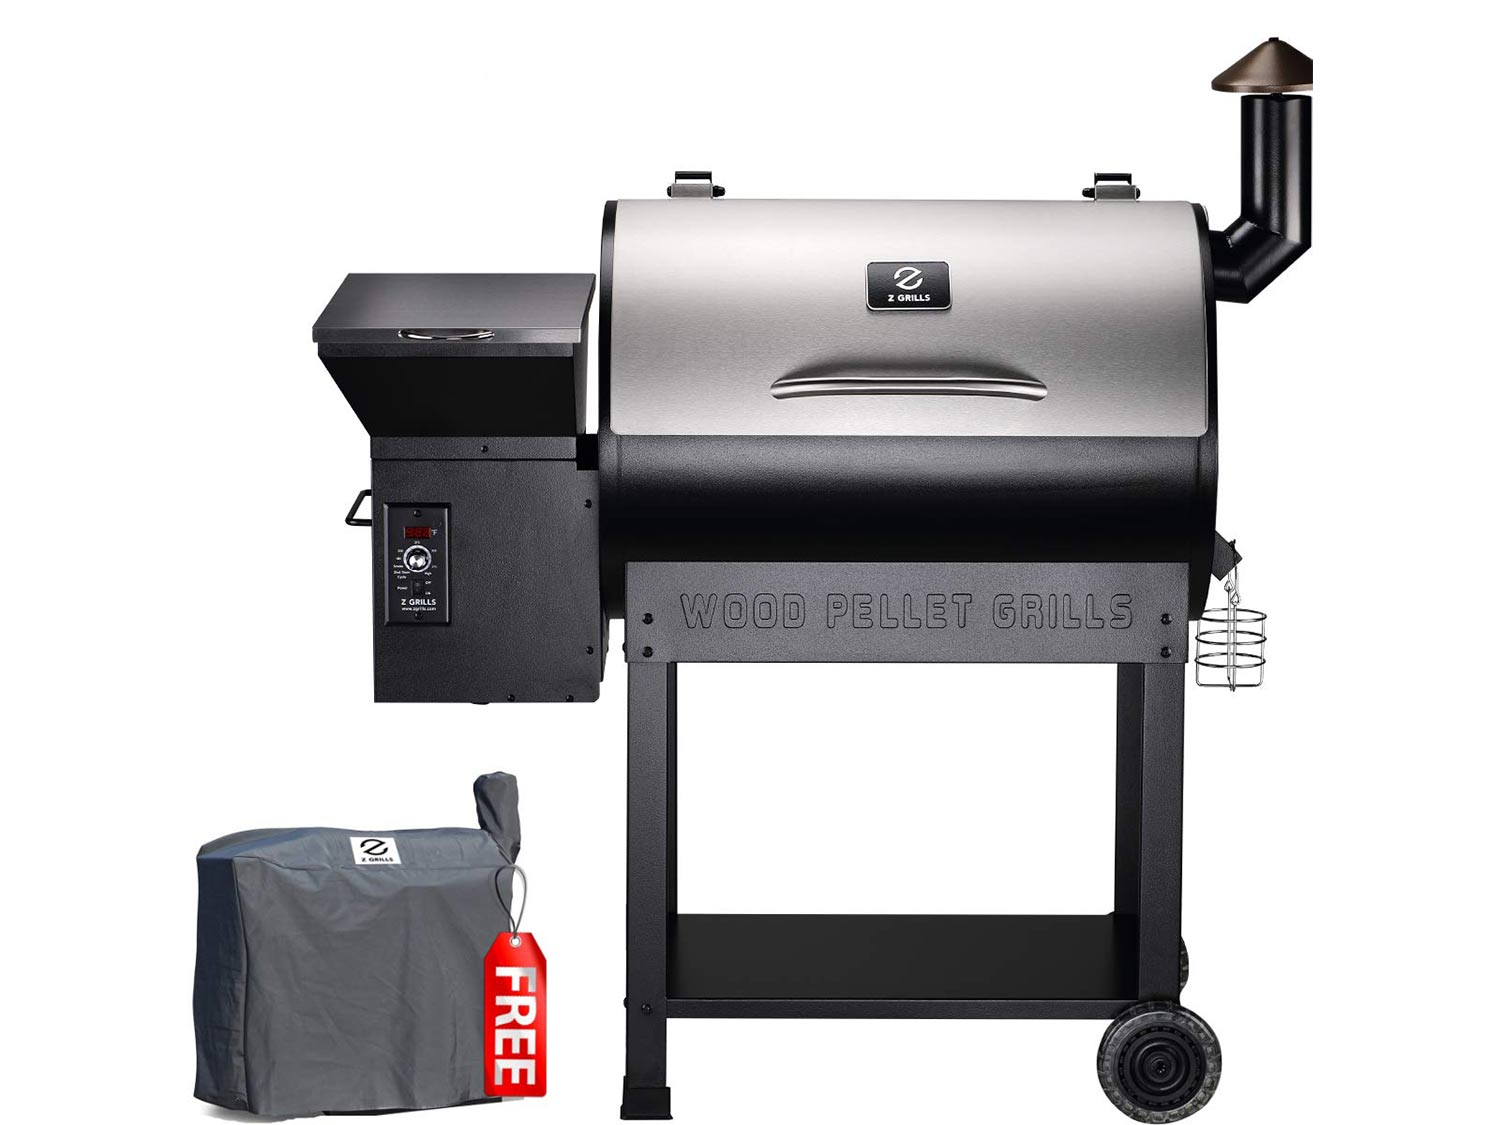 Z Grills 2020 Upgrade Wood Pellet Grill & Smoker, 8 in 1 BBQ Grill Auto Temperature Control, inch Cooking Area, 700 sq in Stainless